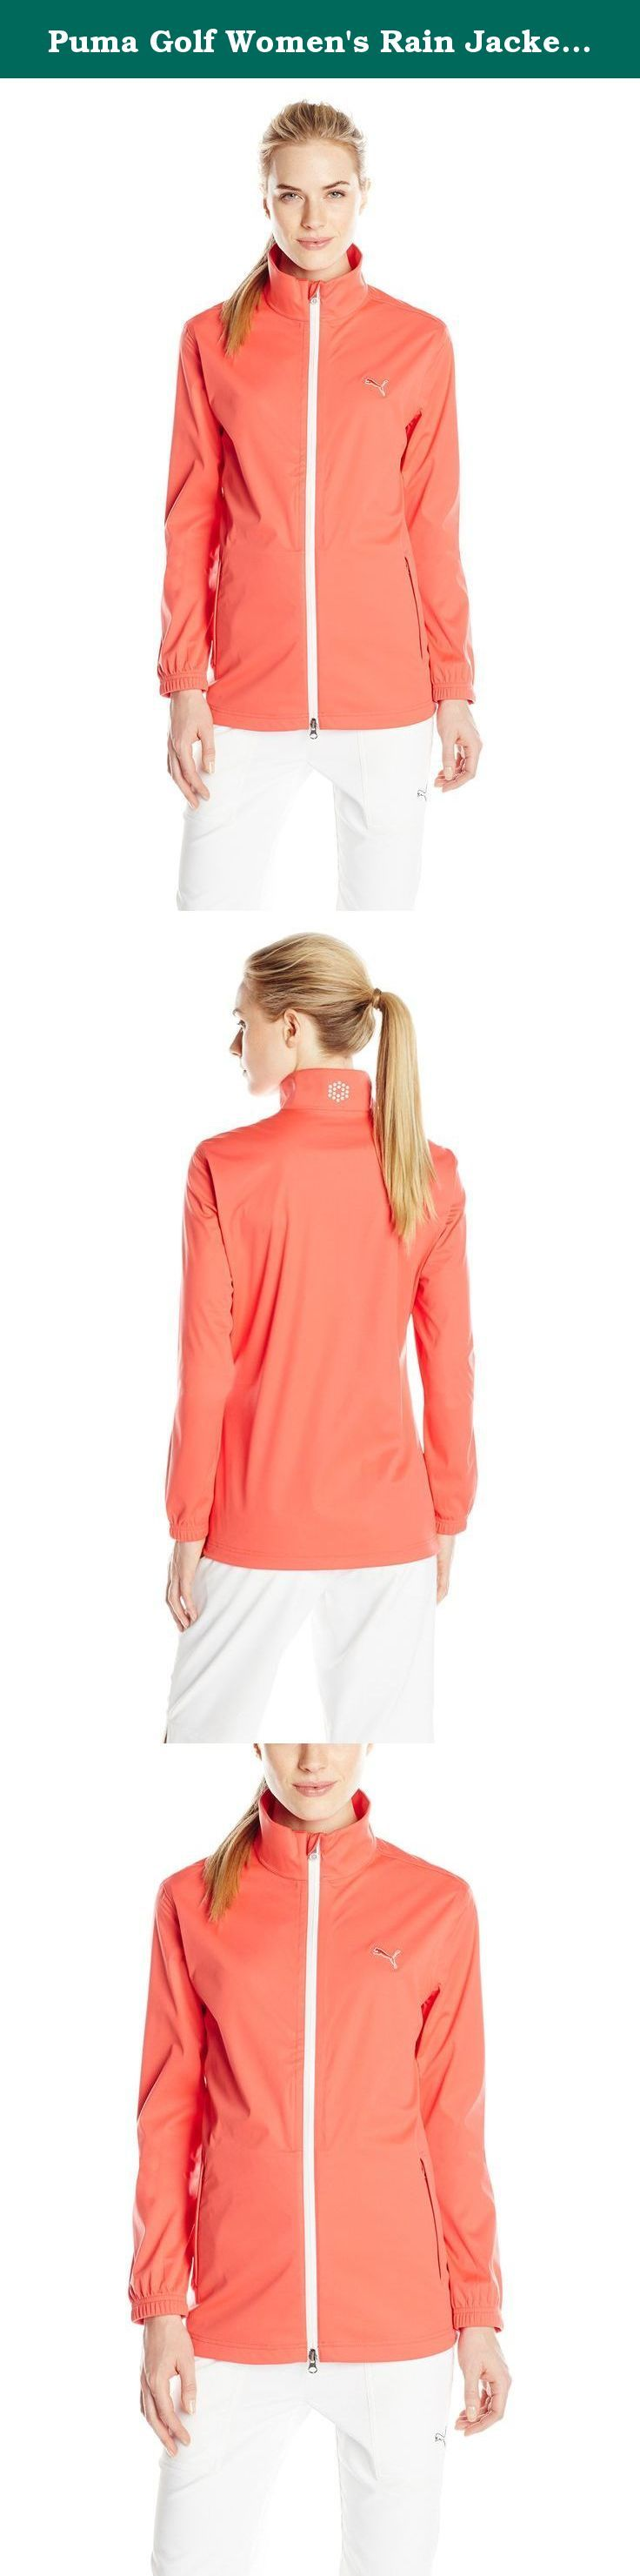 Puma Golf Women's Rain Jacket, Small, Cayenne. Playing in soaked clothes doesn't help your game. Not to mention that it feels Plain awful. The golf rain jacket turns those hazardous and dismal conditions to your advantage. Its storm cell properties - waterproof fabric, front zipper and pockets - help keep you drier than that martini waiting for you at the 19th. (You earned it, Champ.).